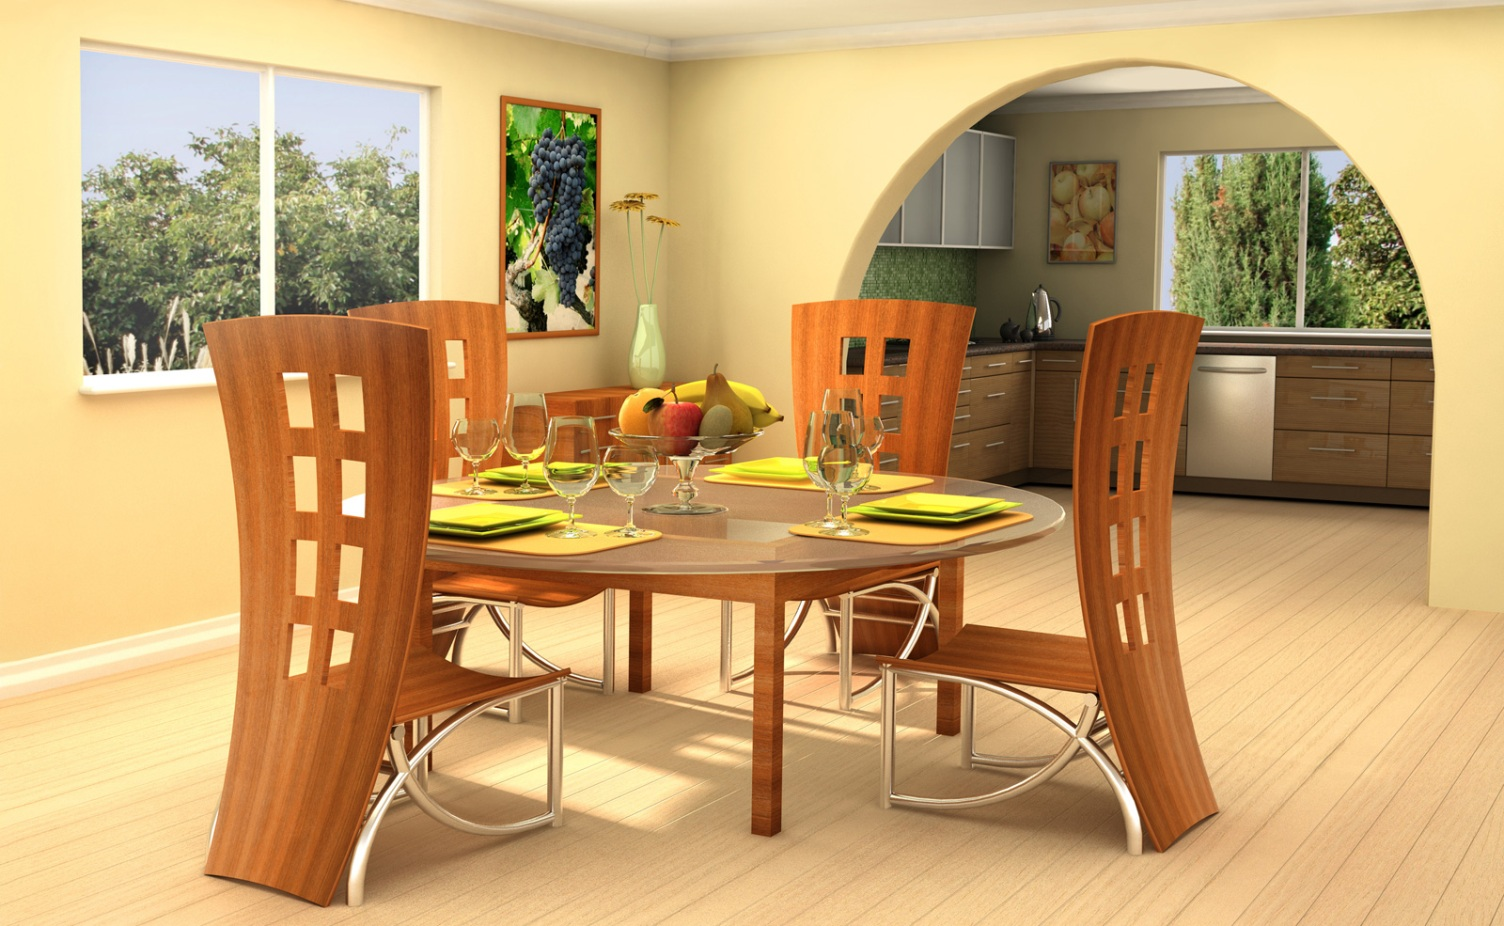 Go creative and Pick unique dining room table and chairs  : Go creative and Pick unique dining room table and chairs from 2017 market 19 from diningroomdid.com size 1504 x 926 jpeg 379kB